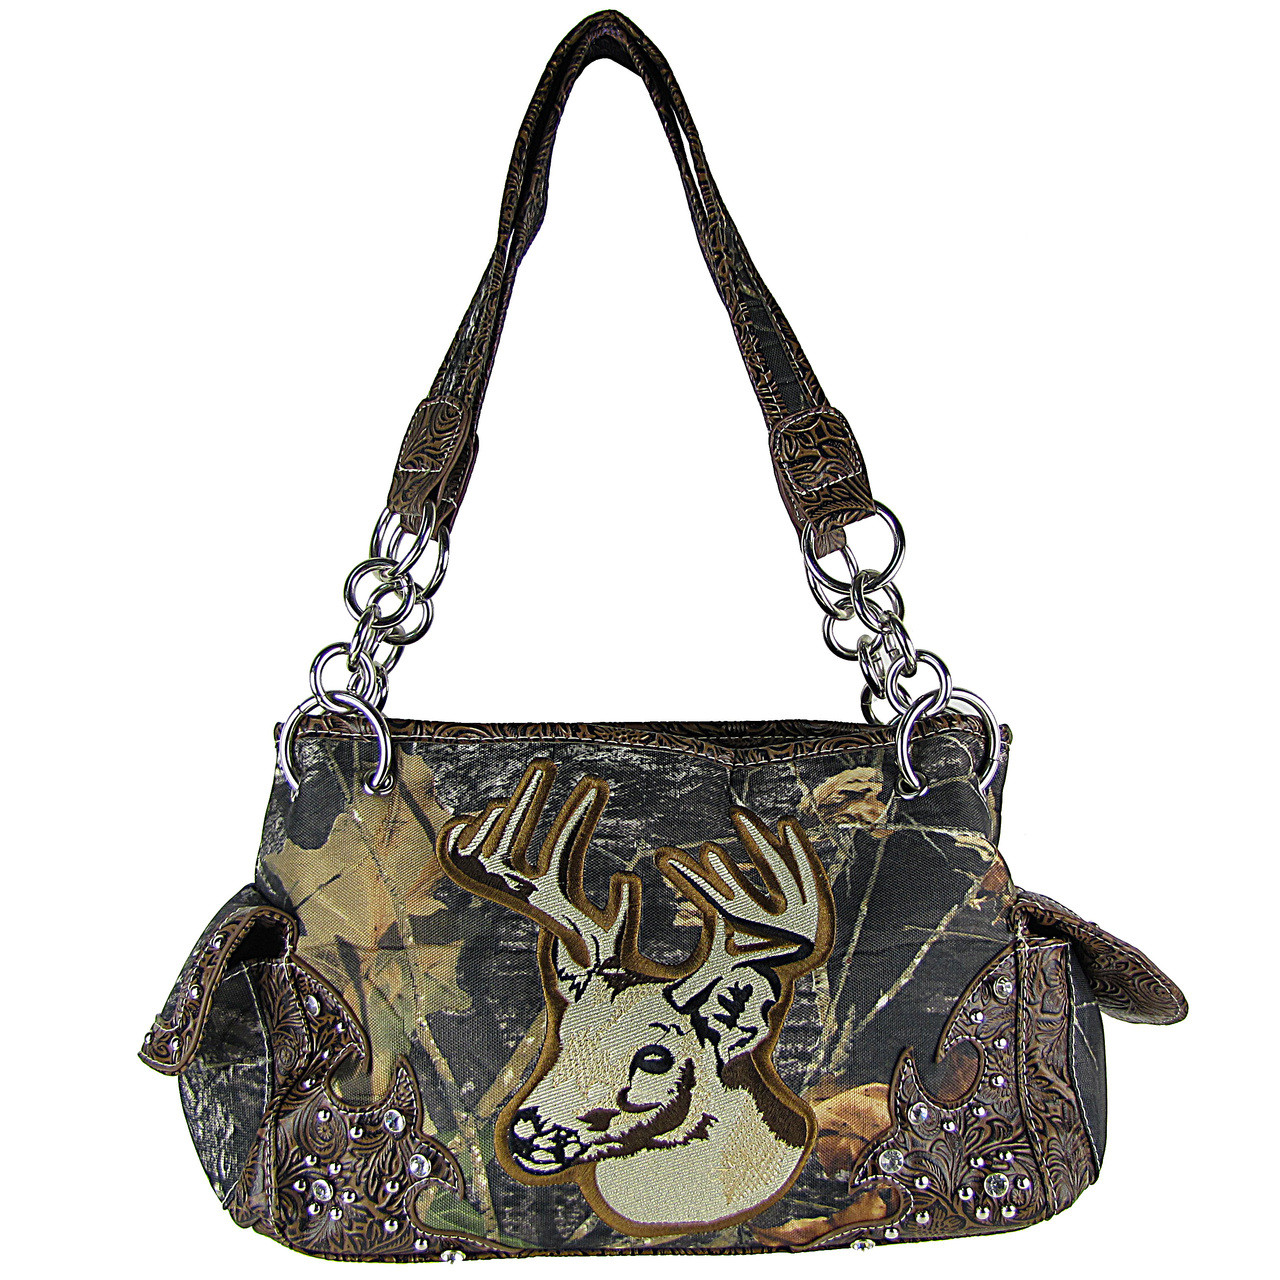 BROWN MOSSY CAMO DEER SHOULDER HANDBAG HB1-CA6625BRN